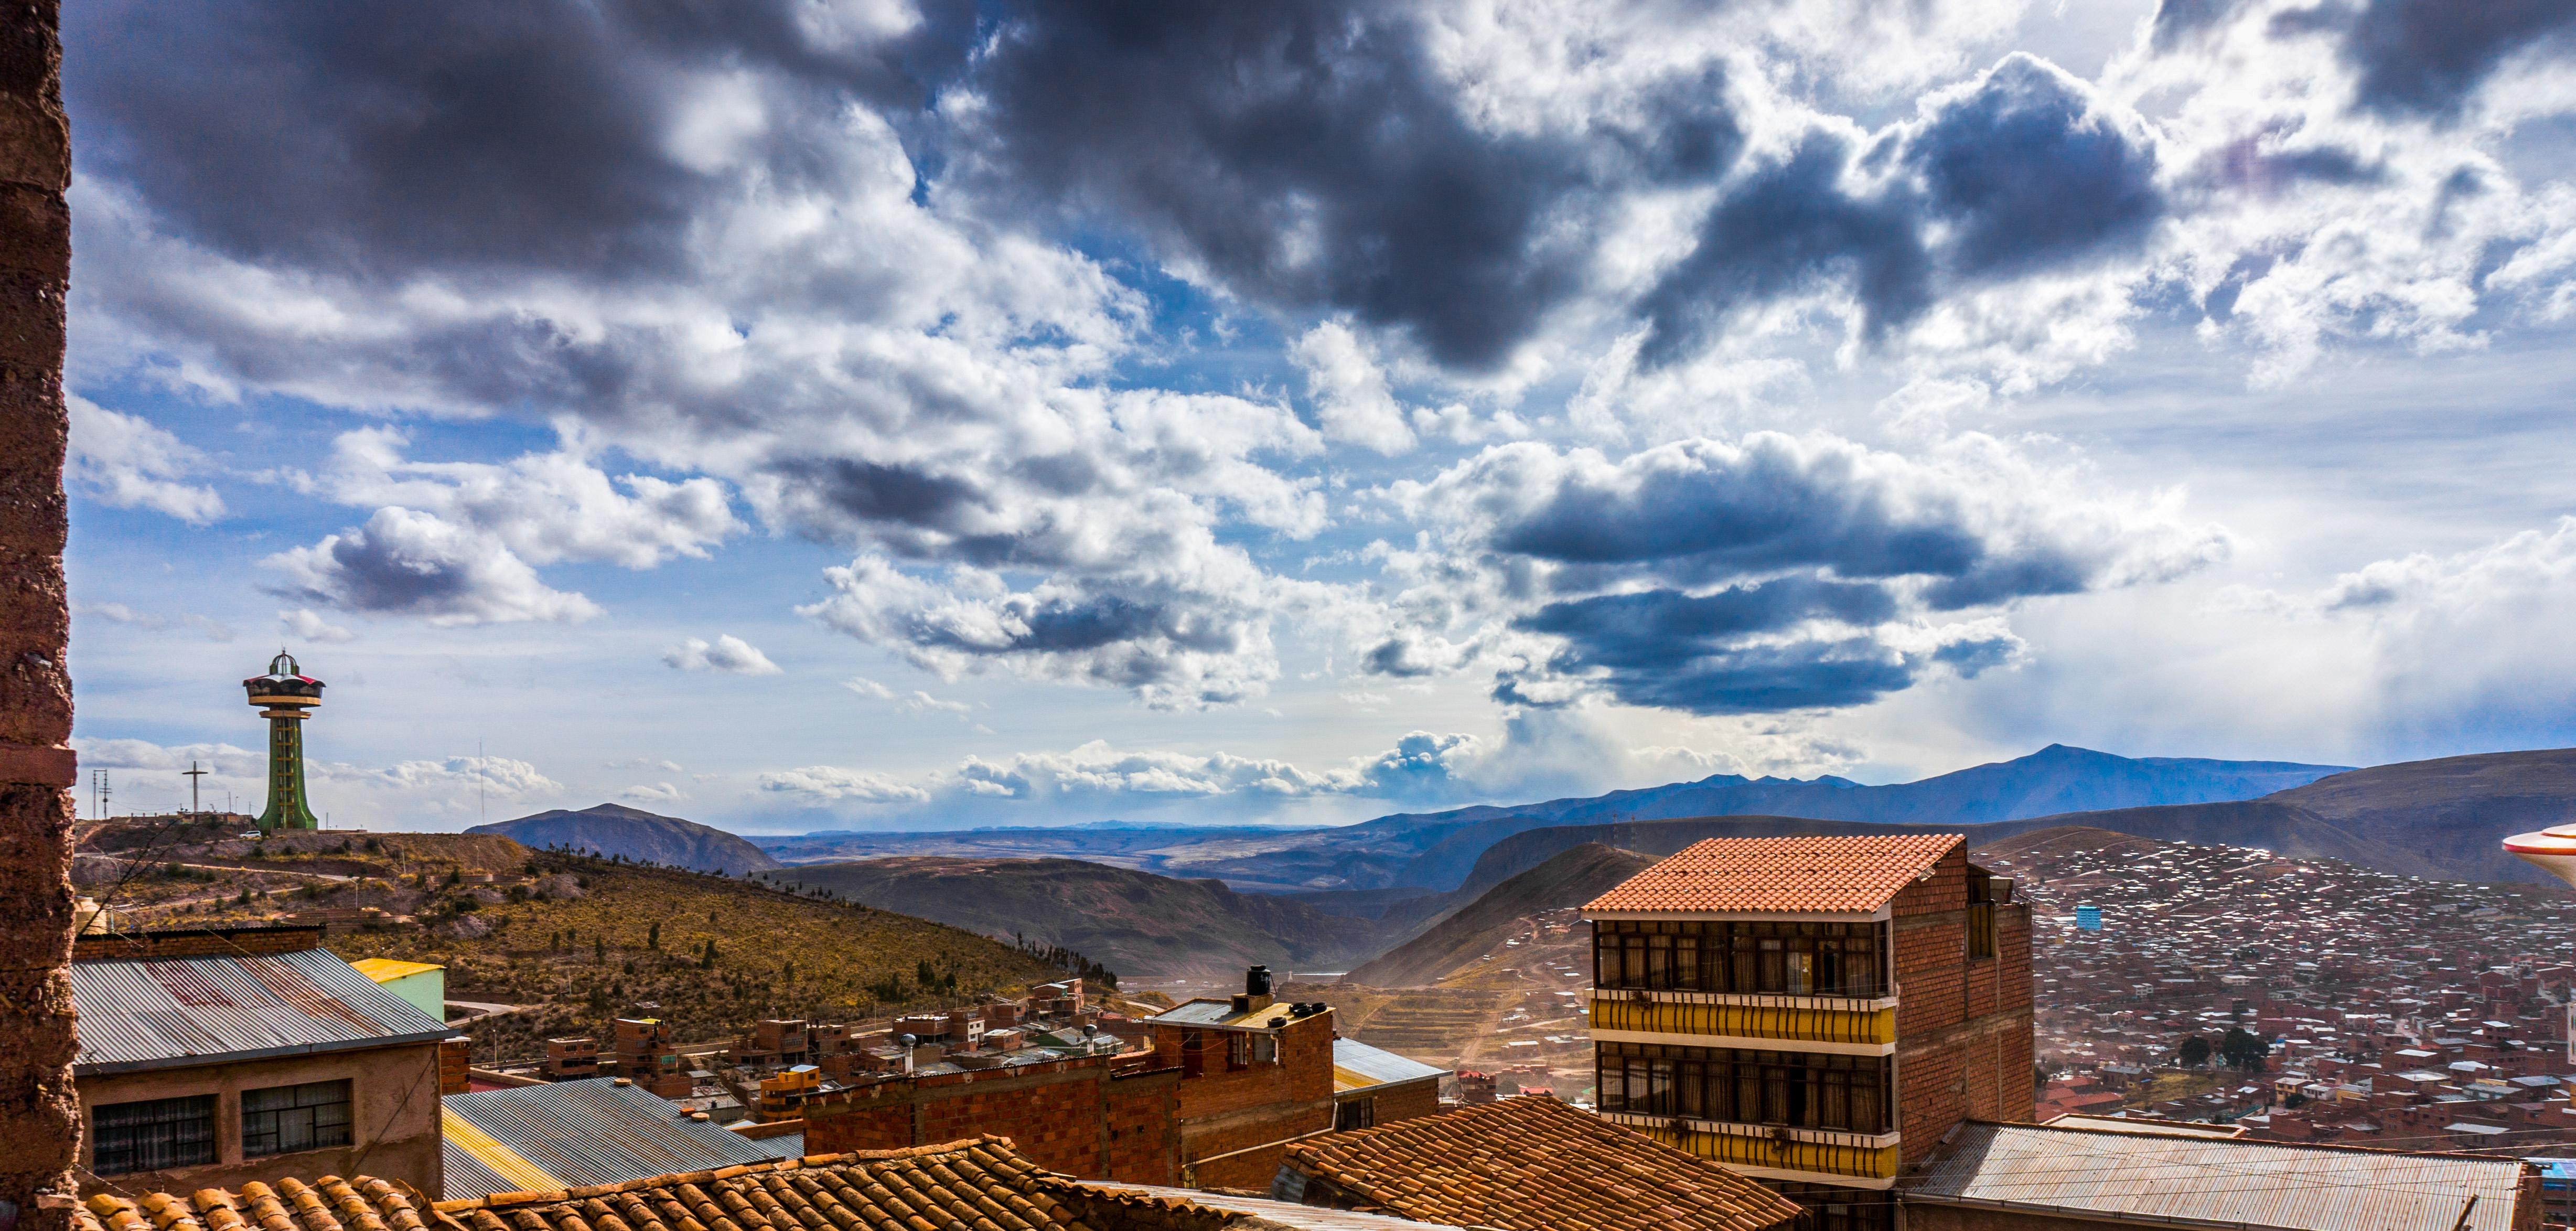 potosi Potosí is, at around 4000 metres, one of the world's highest cities it is located in the potosí department of bolivia understand [] potosí was founded in 1546 after the discovery of the rich silver deposits in the cerro rico.